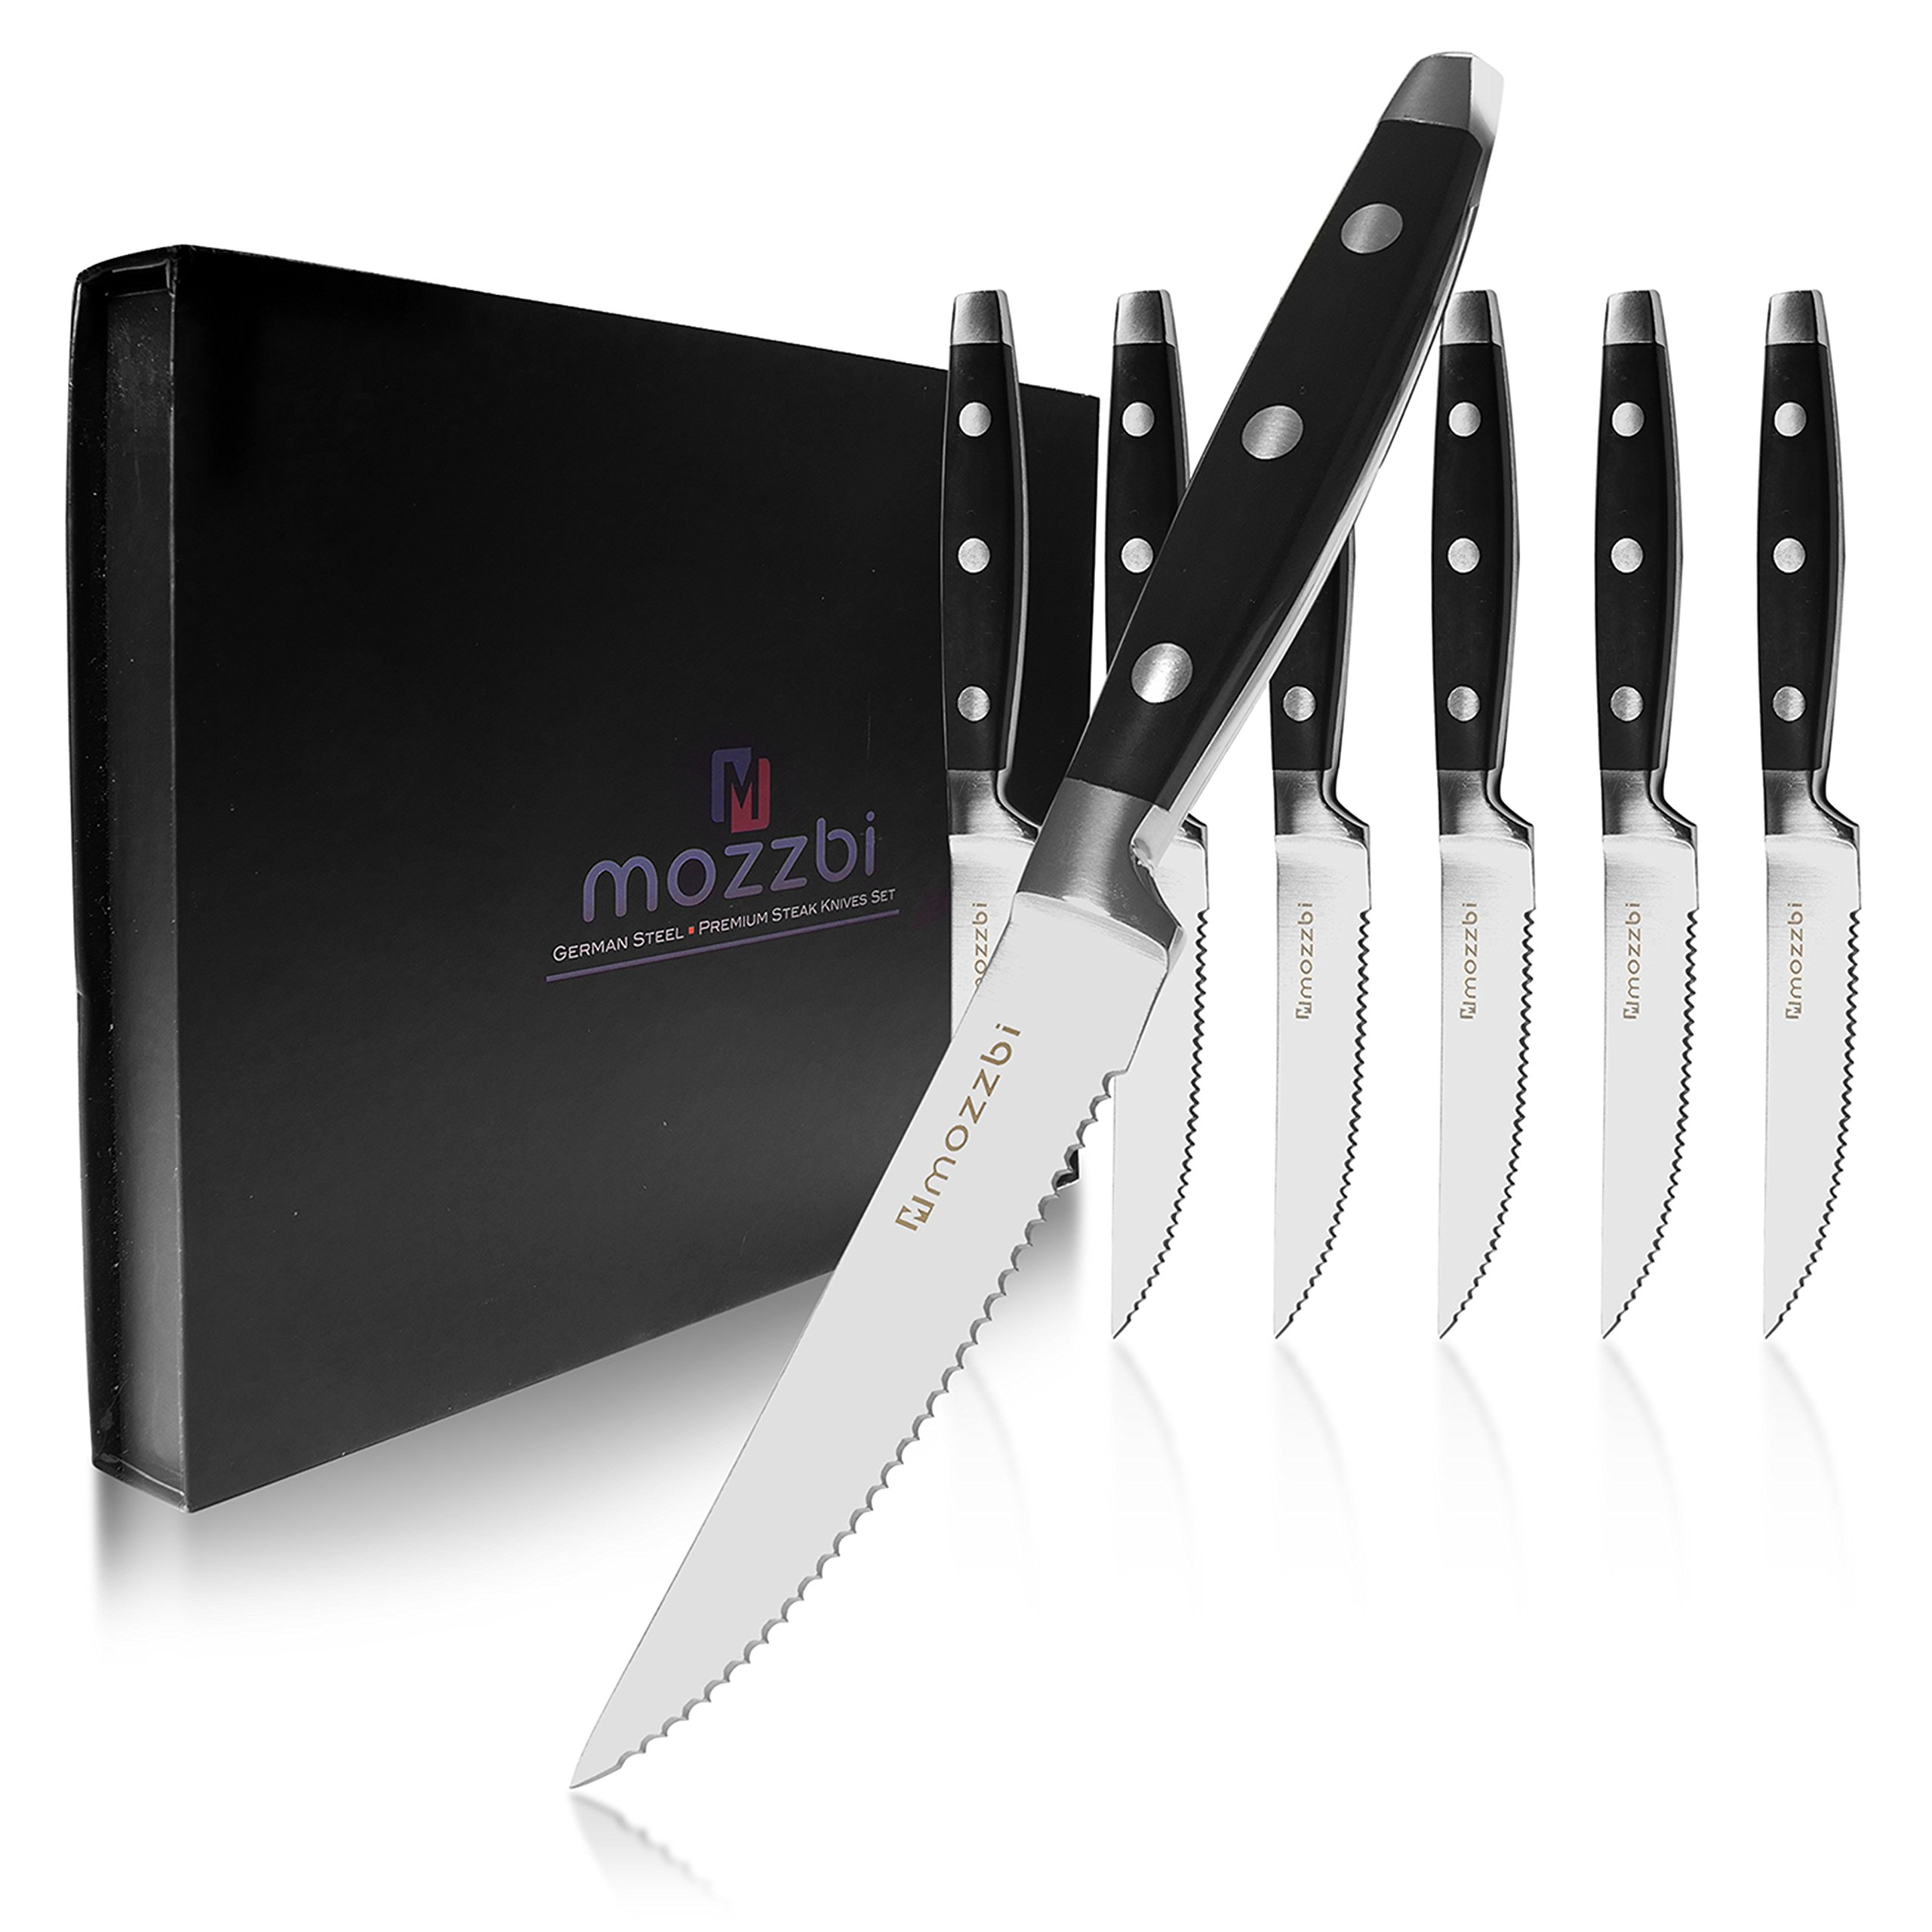 Premium Serrated Steak Knives 6-Piece Laser Cut Ultra-Sharp Stainless Steel Steak Knife, Cutlery Set,Dinner Knives Gift Set By Mozzbi.